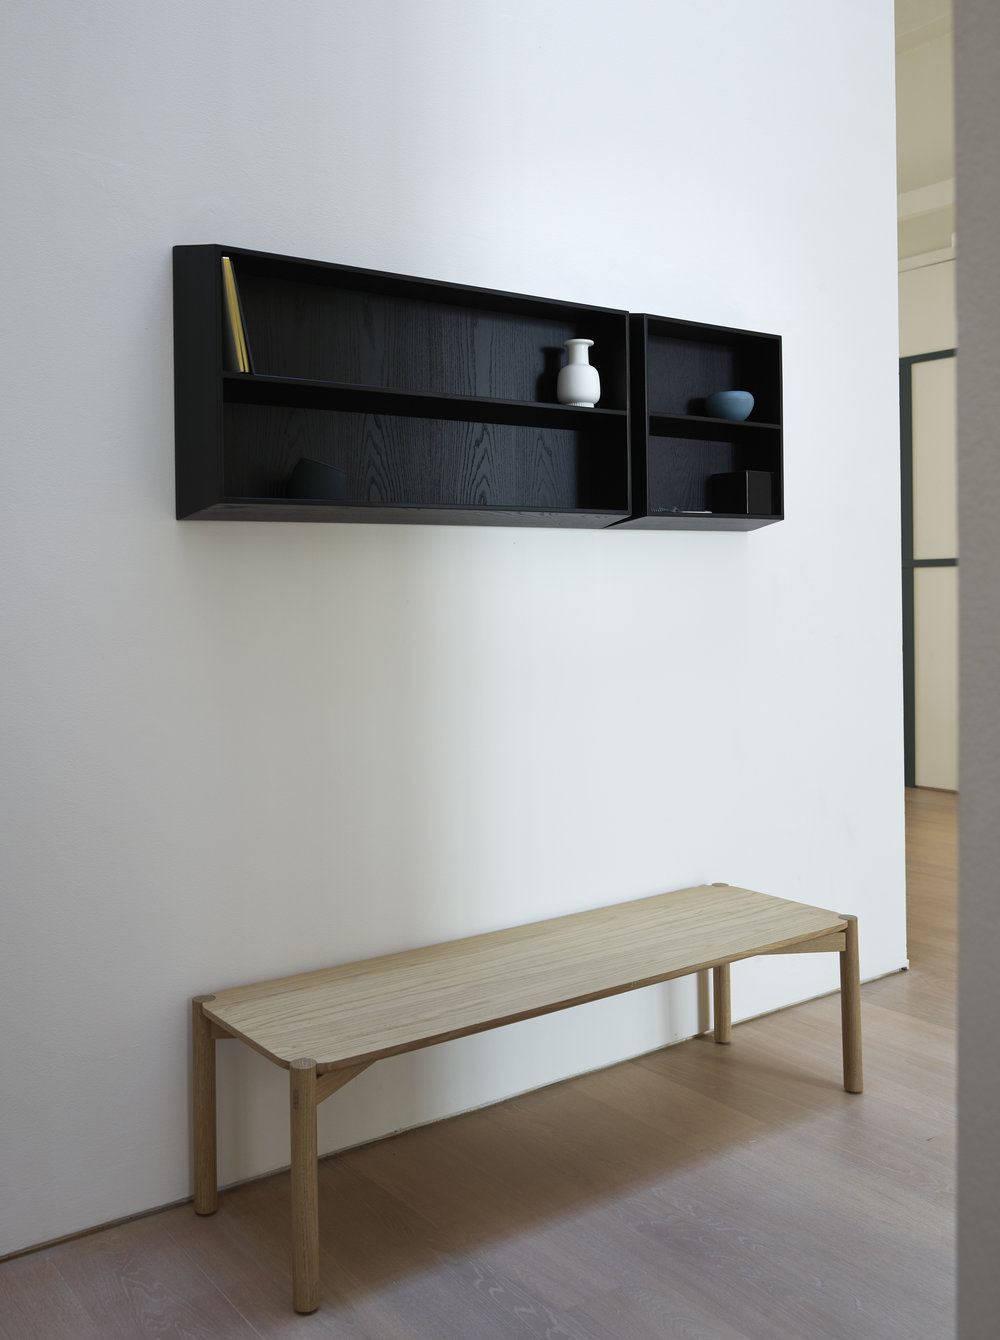 Brac Wall Modular System -Latest new entry for Ex.t, Florence based studio Deferrari+Modesti has designed a flexible furniture system made of wall mounted containers. The tapering of frame and shelves gives aesthetic lightness to the design whilst the varnished ash provides strength to the piece. Featuring three essential and elegant modules that can be set together in multiple ways, Brac is an ace solution for the bathroom as well as for many residential or working spaces.